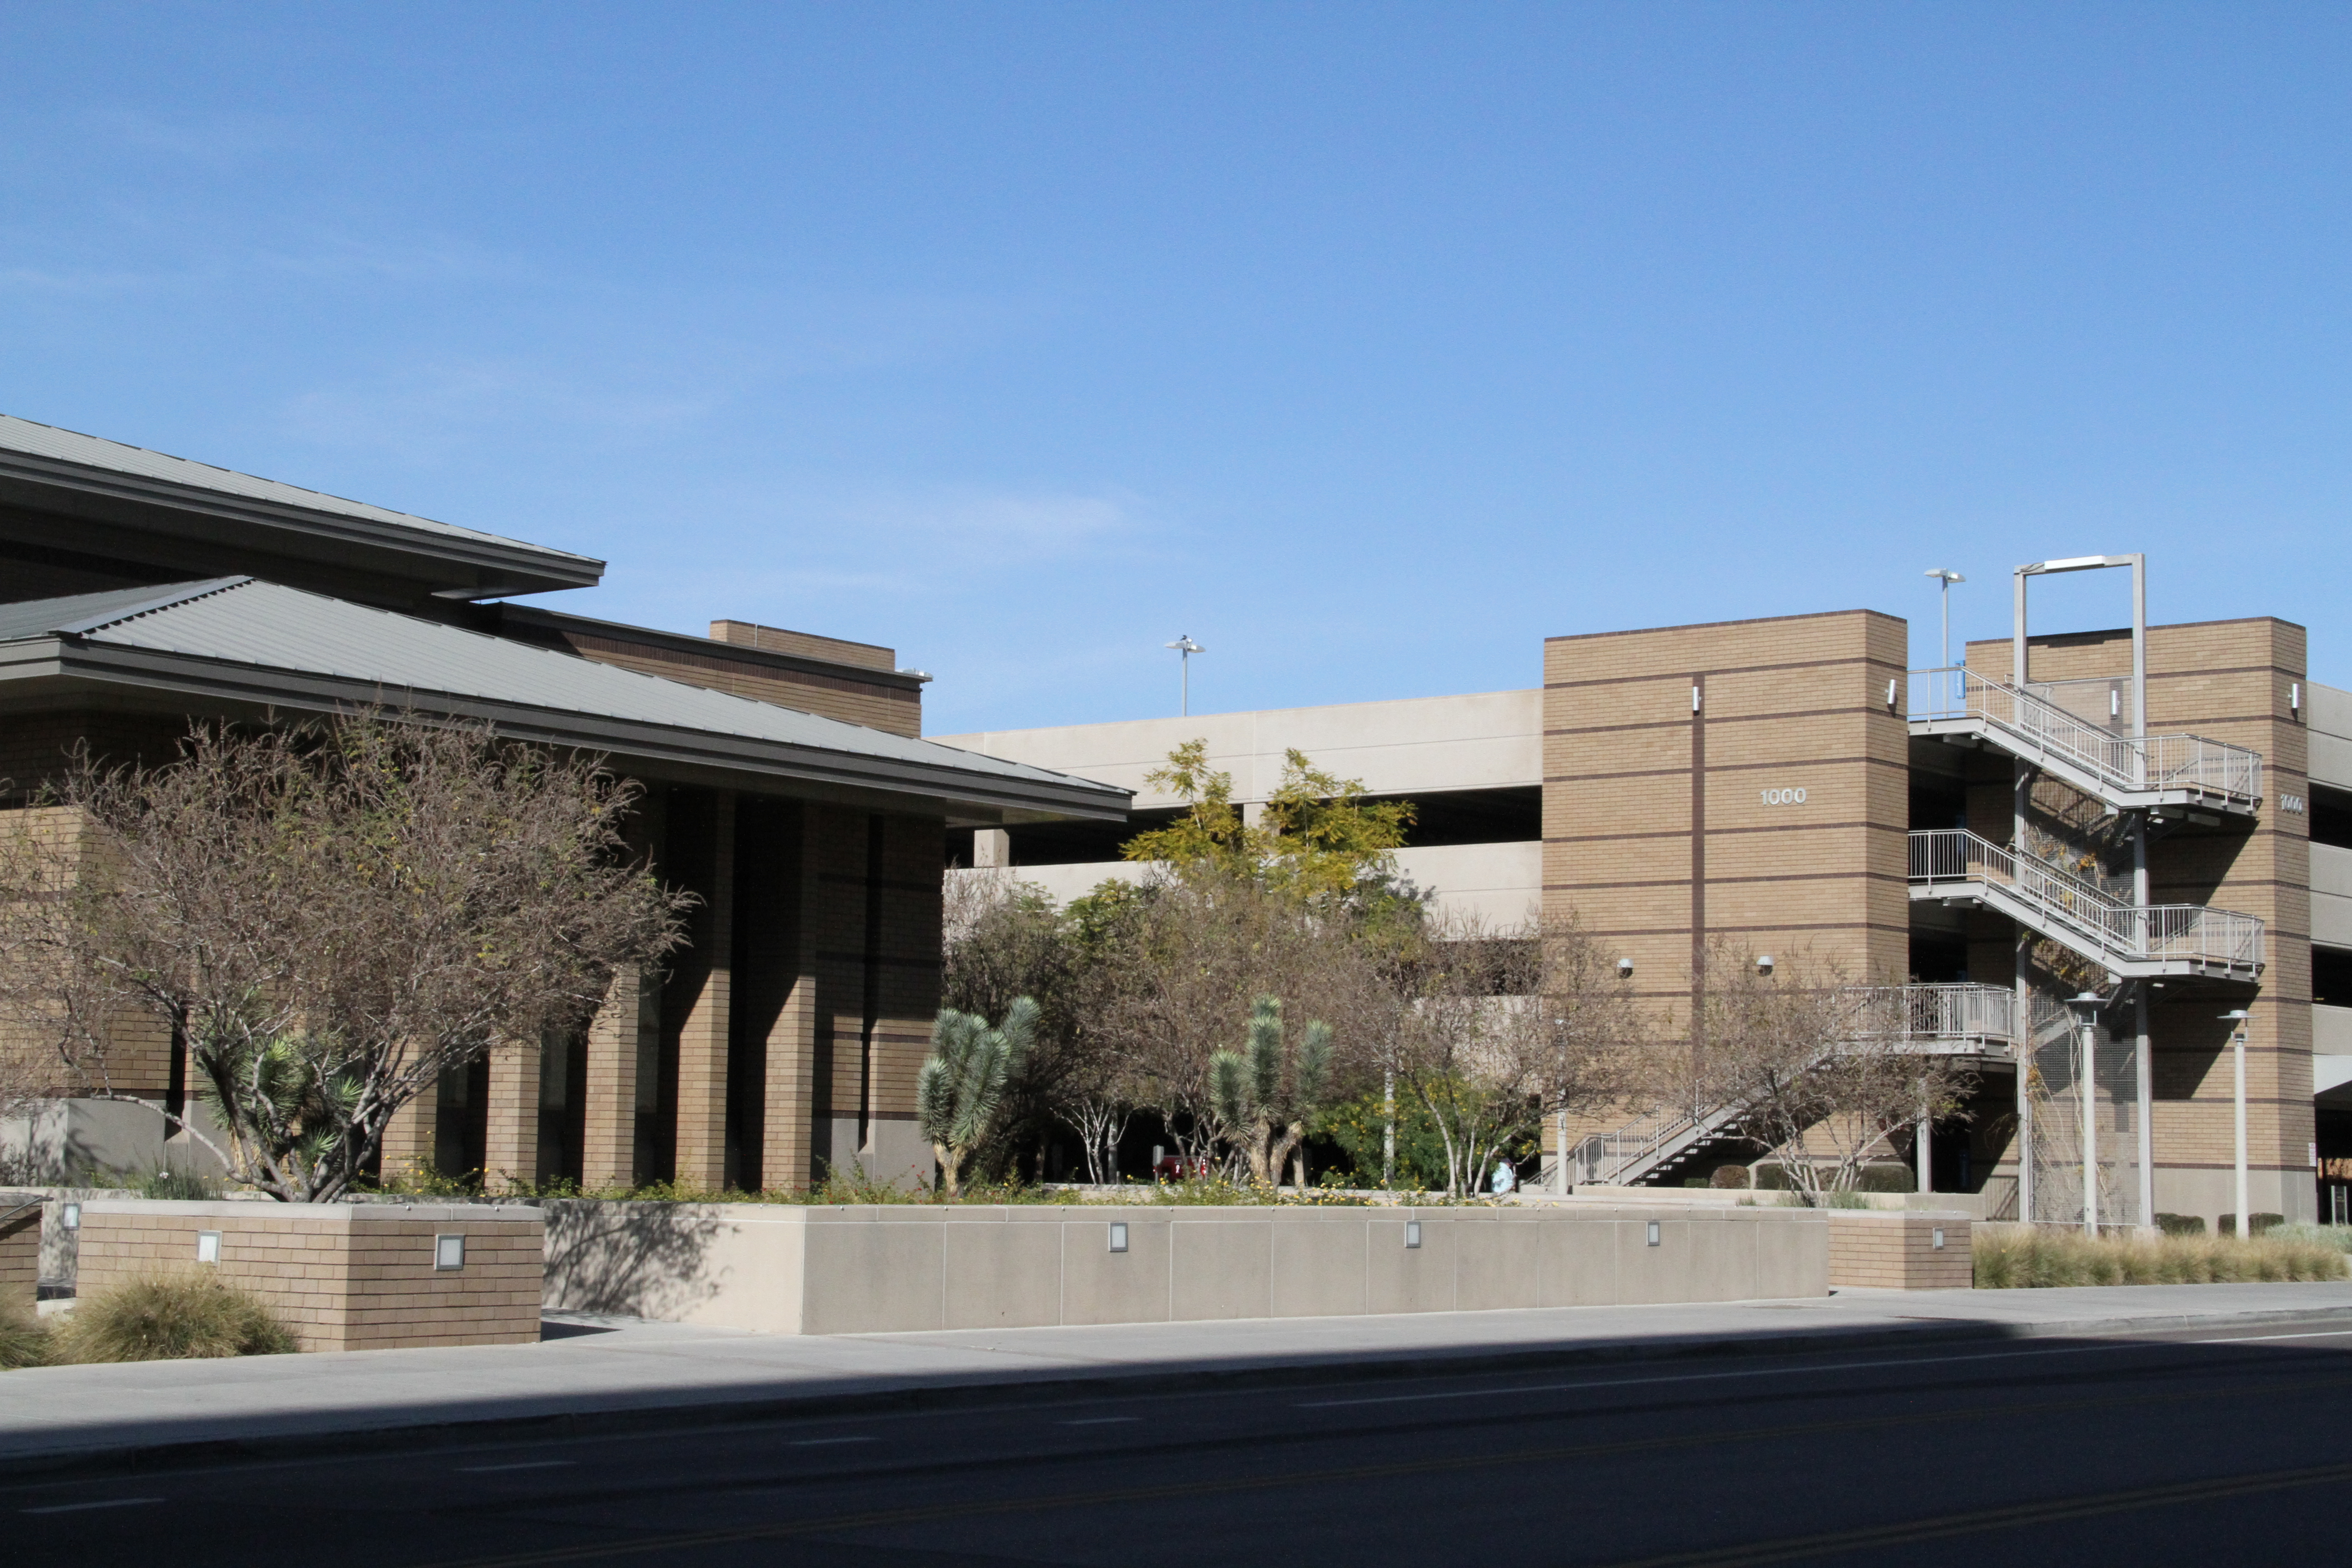 A view of the institute of religion building on the Arizona State University campus.